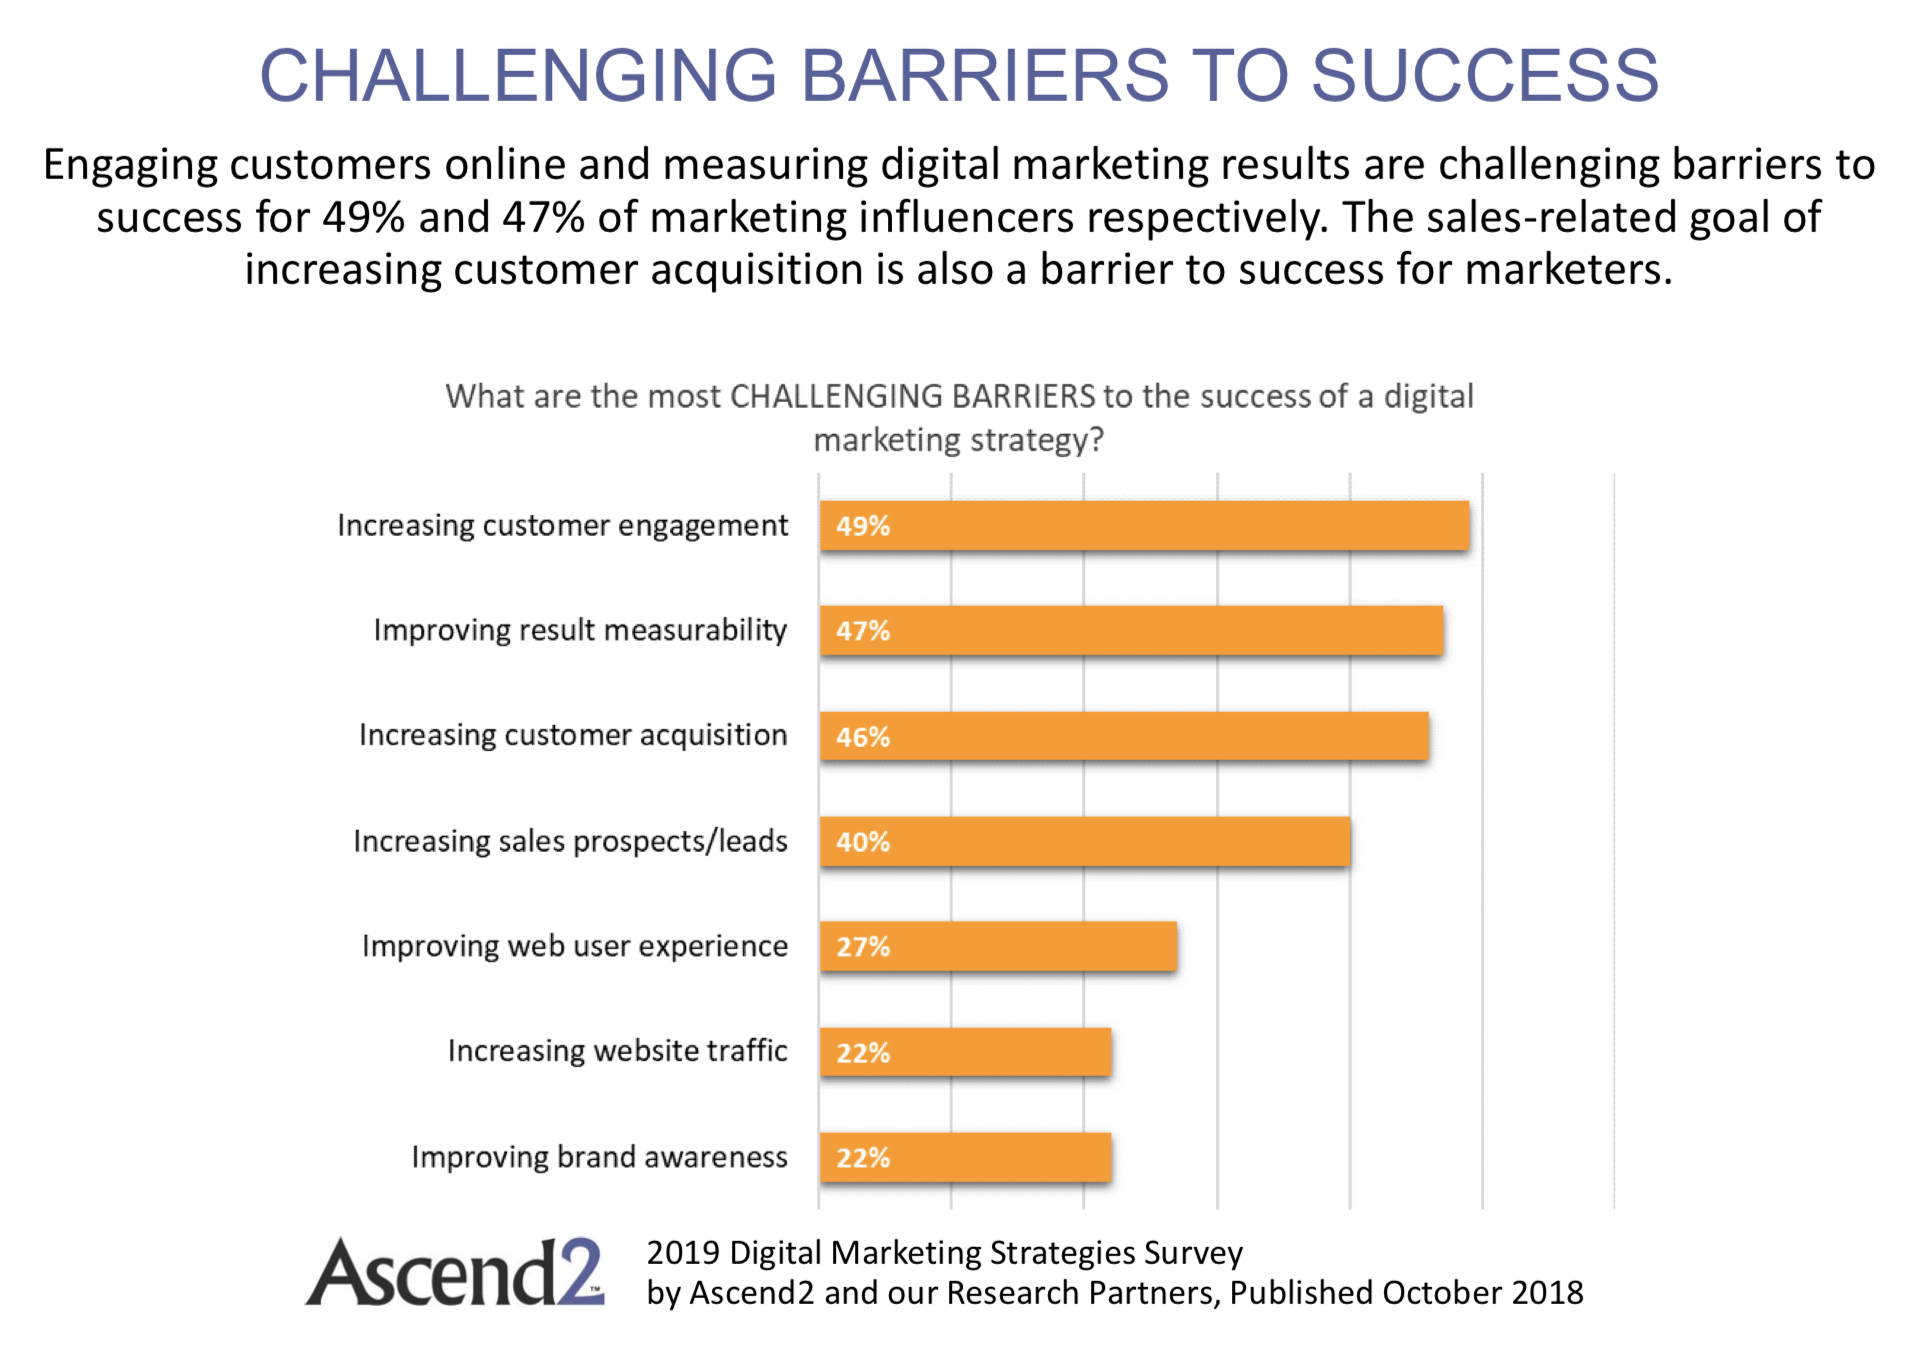 digital barriers to success 2019